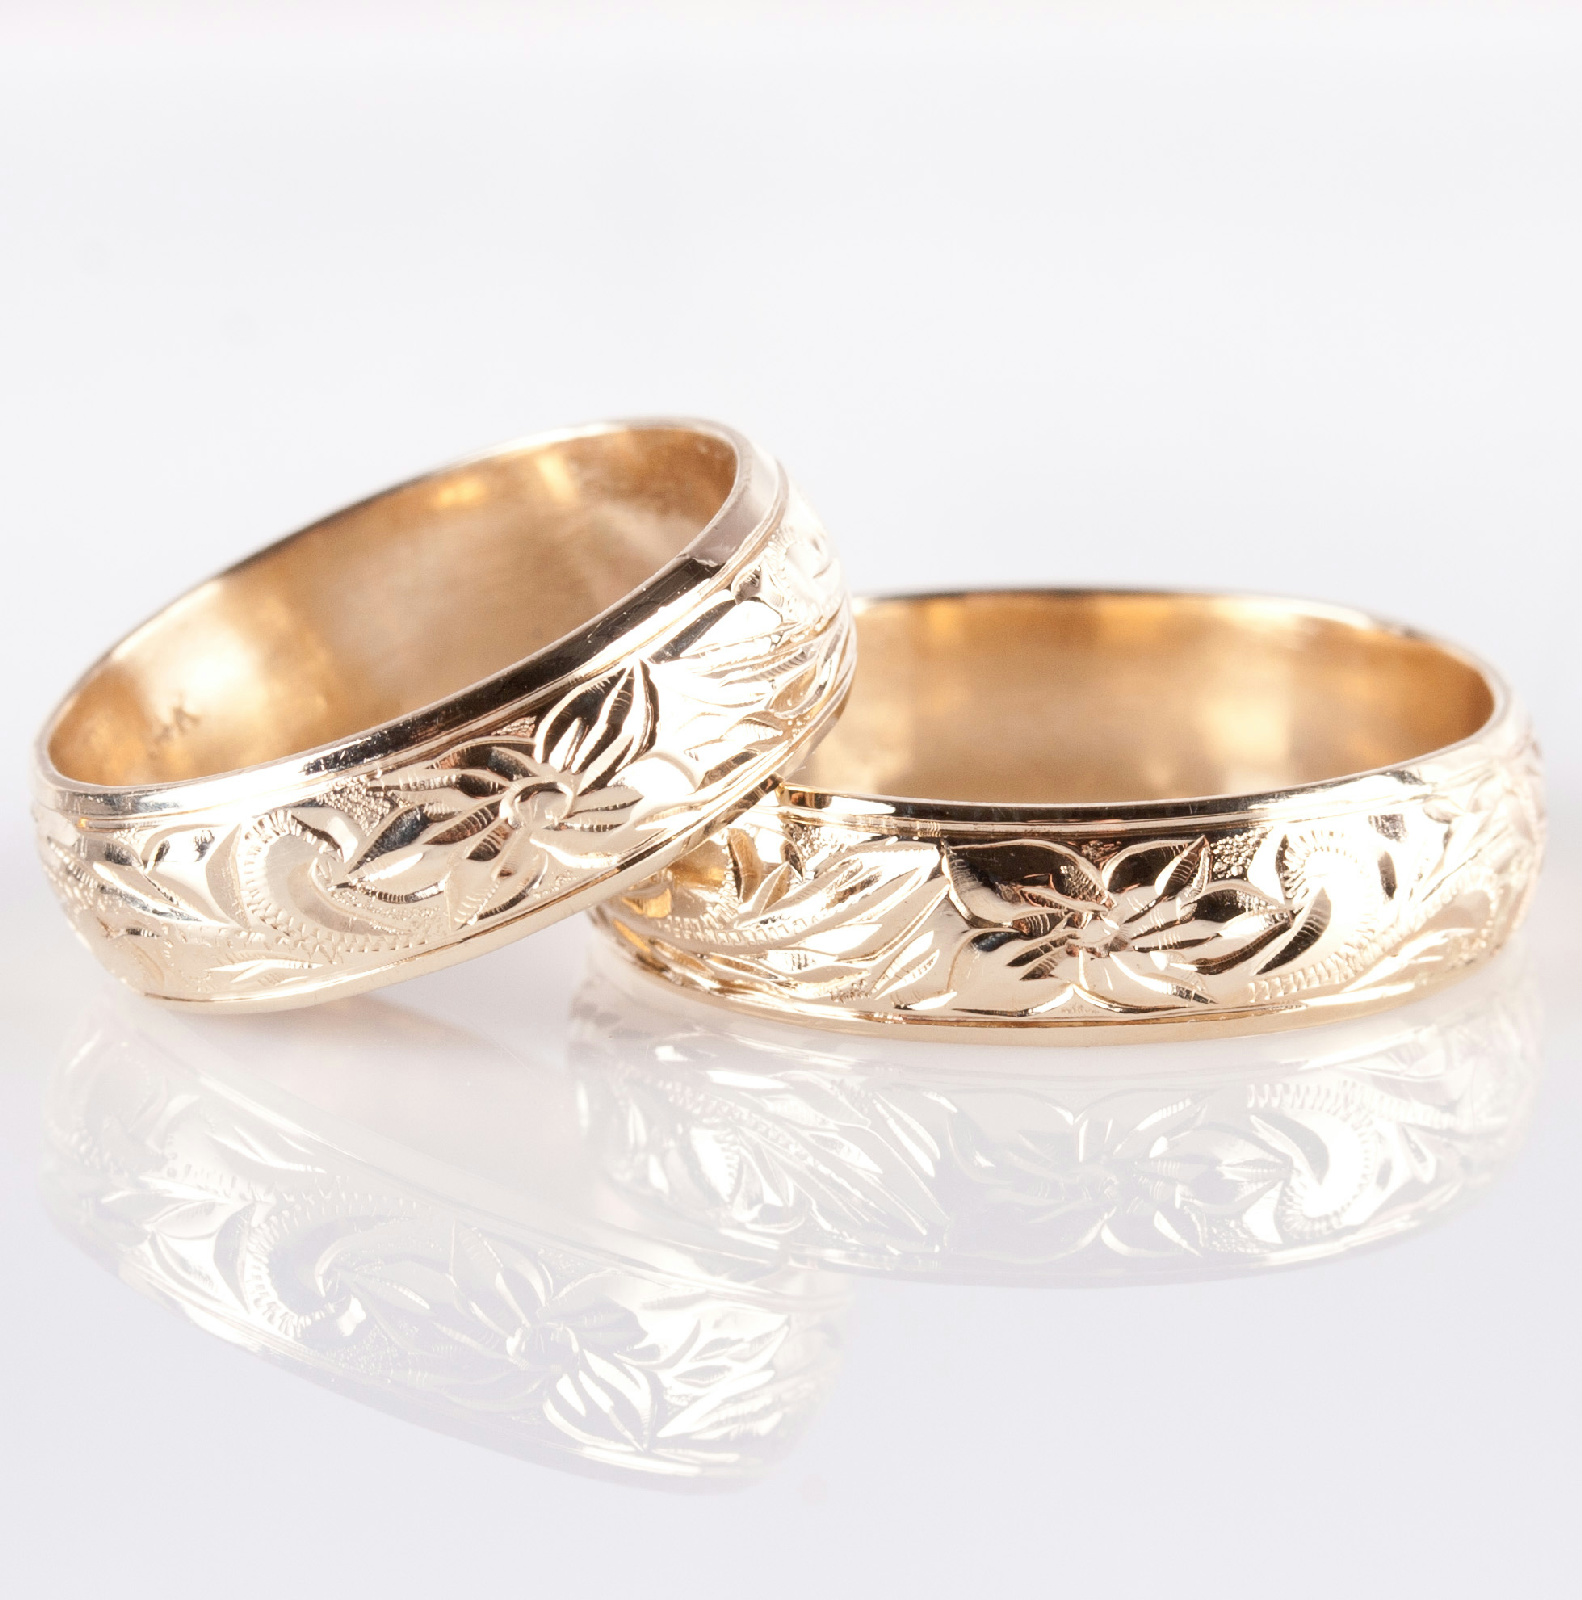 Floral Bands: 14k Yellow Gold Etched Floral / Leaf Design Matching